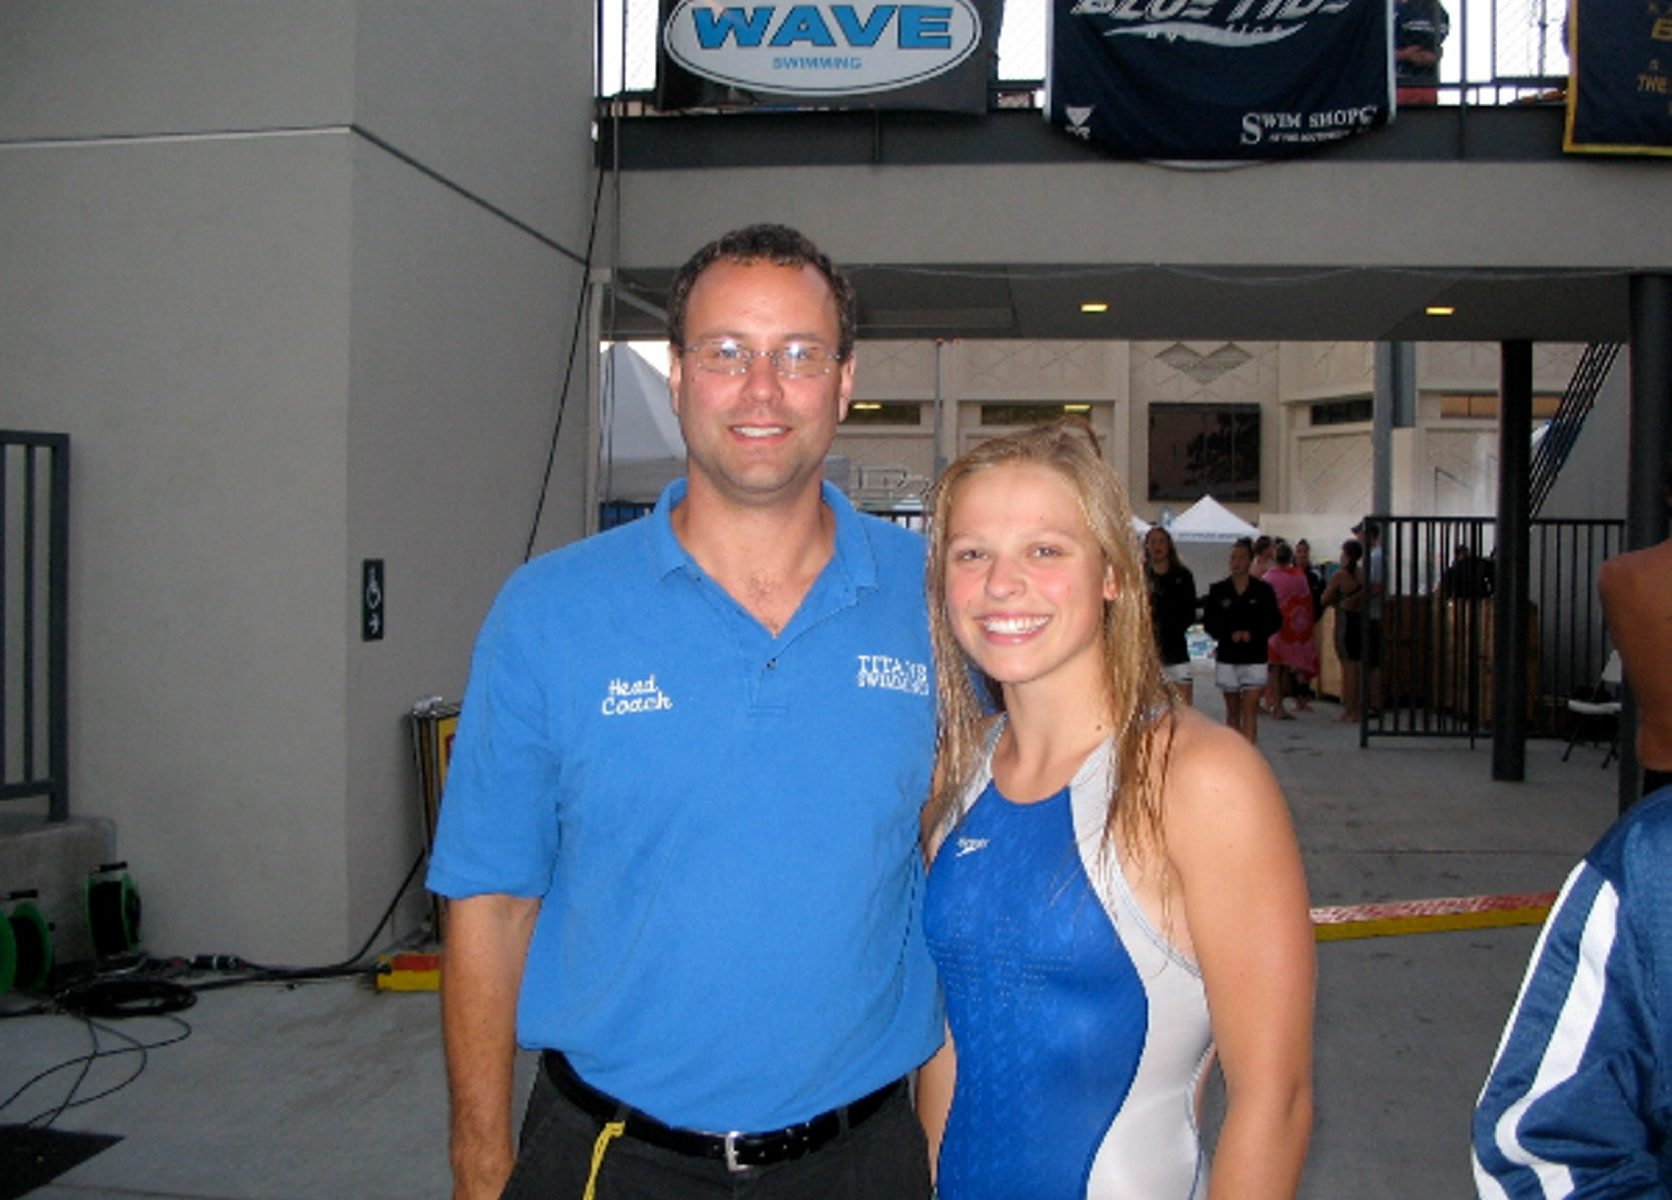 The memory of Natalie Lewis, shown with swimming coach Scott Vanderzell, lives on.